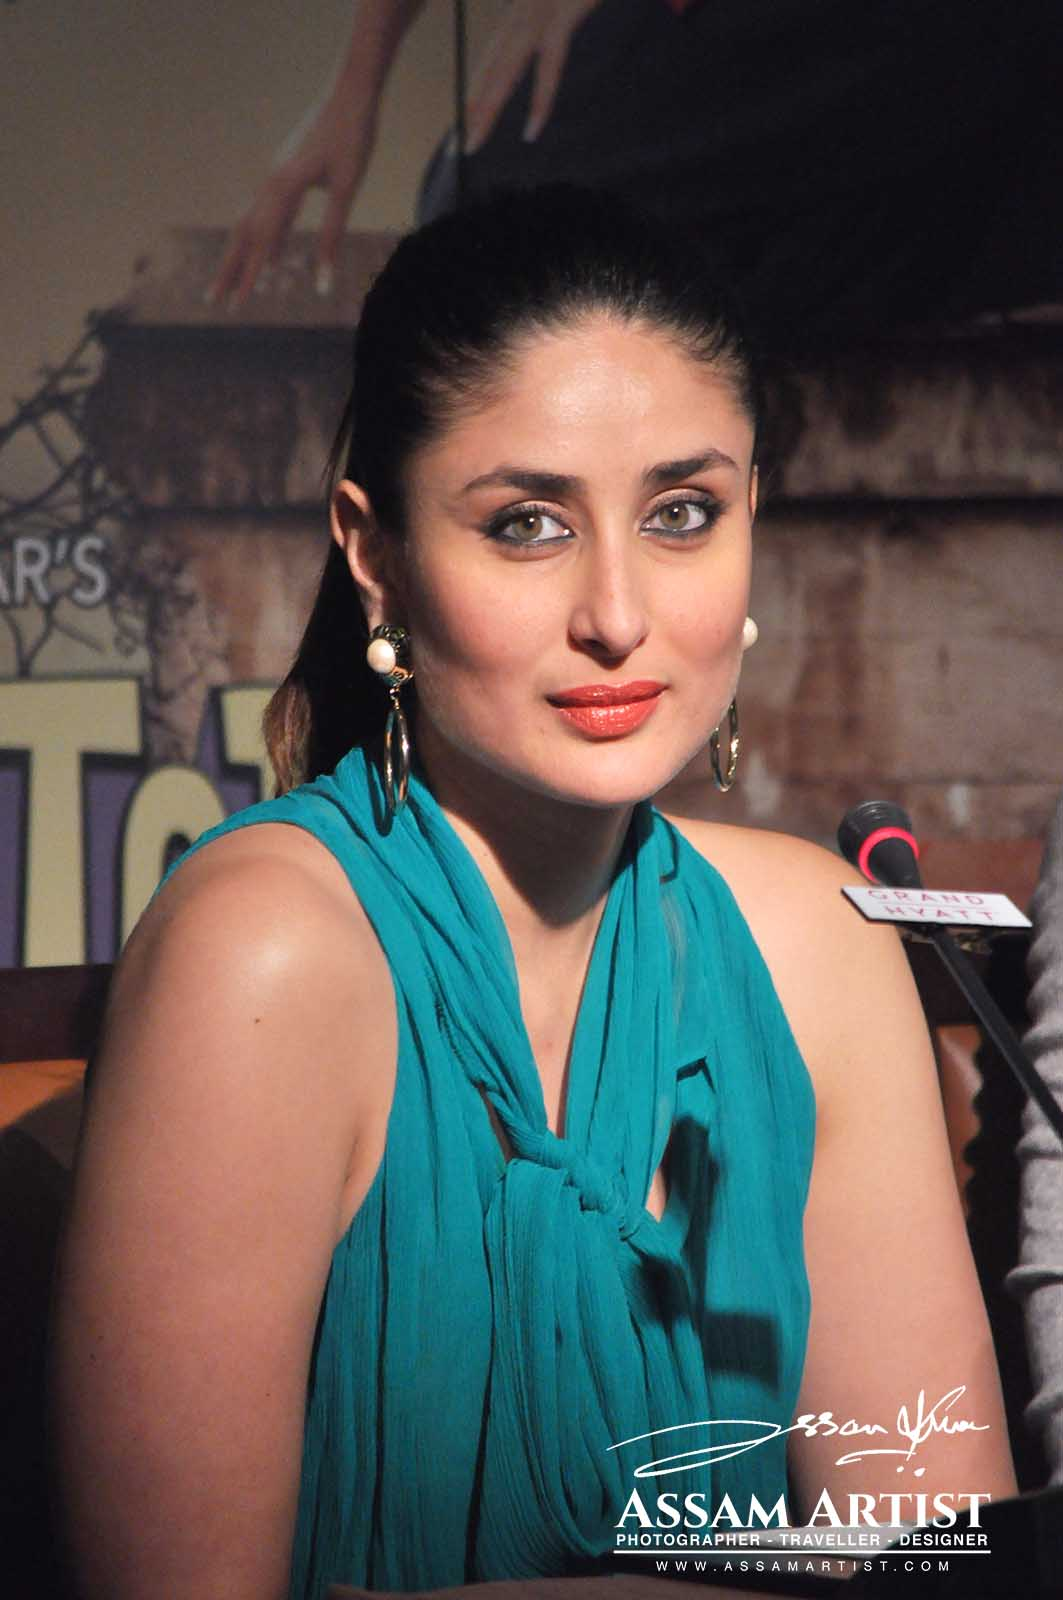 Kareena Kapoor Khan - Actress